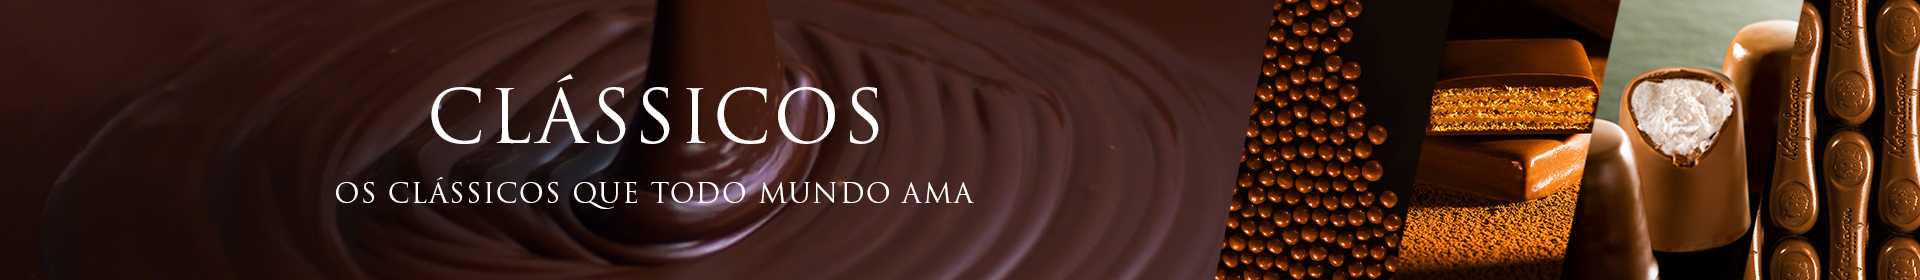 Banner Clássicos